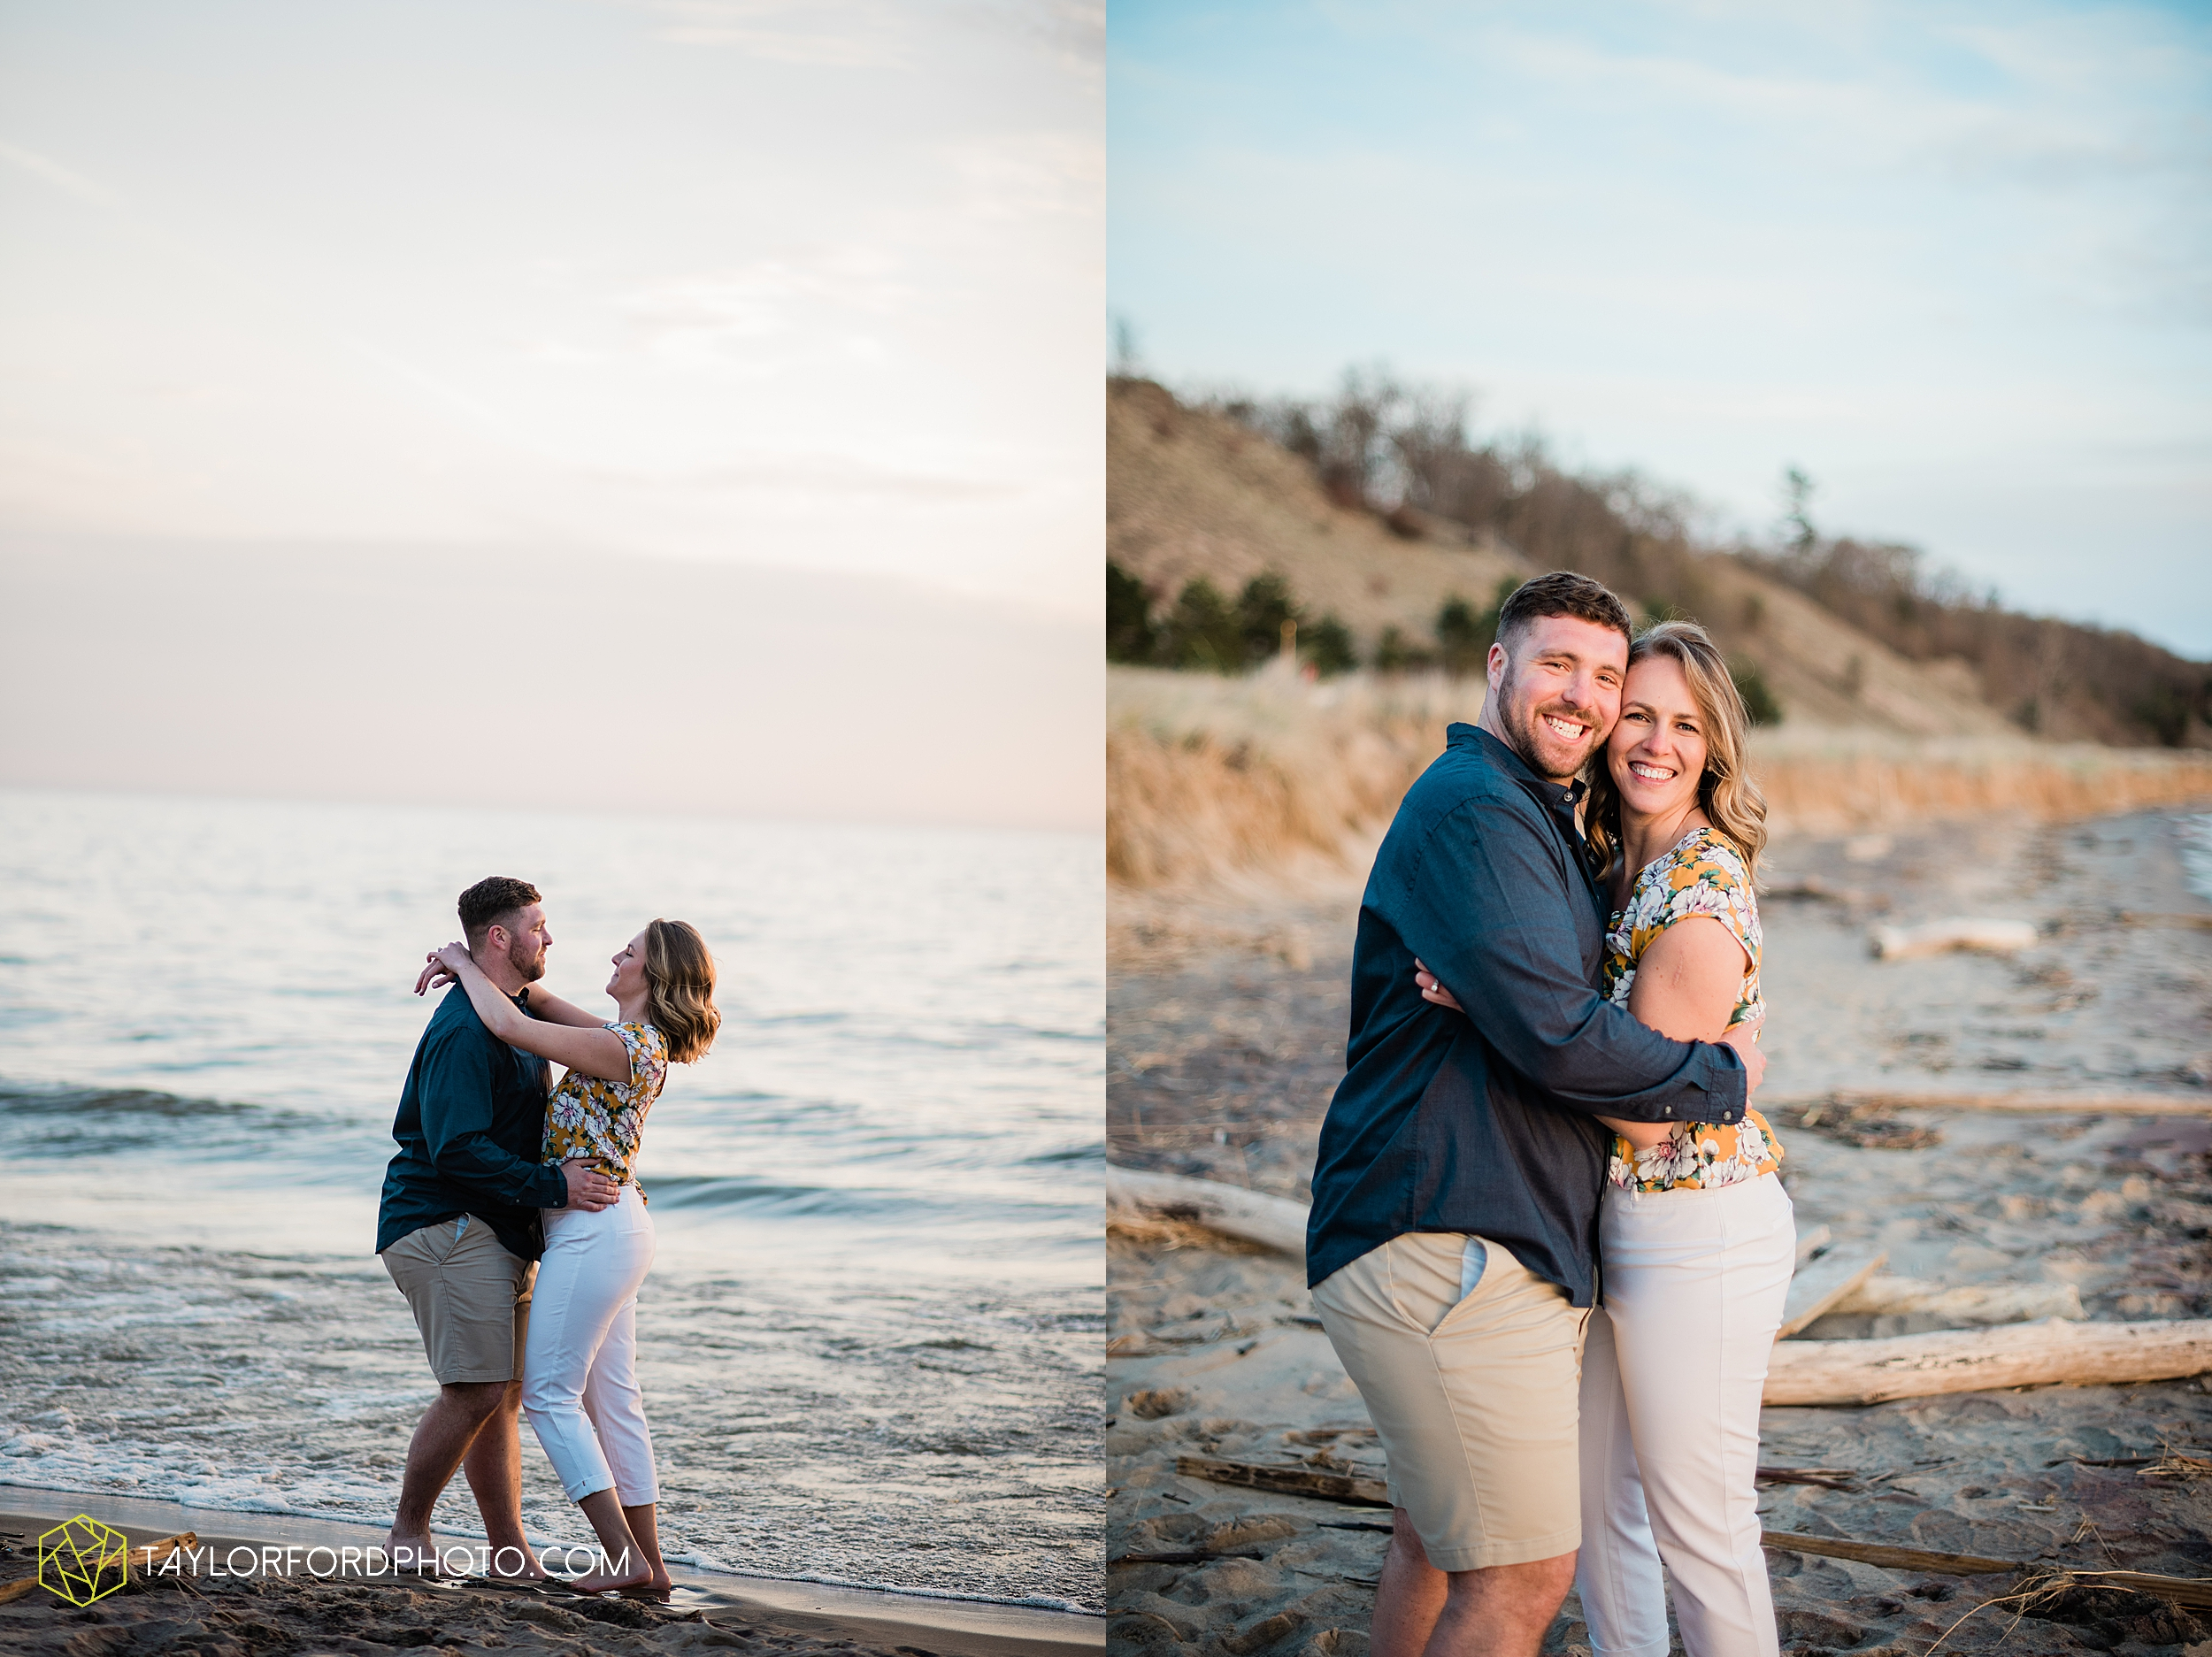 holland-michigan-tulip-time-downtown-hope-college-riverside-park-laketown-beach-lake-michigan-engagement-photographer-photography-taylor-ford-hirschy-photographer_2626.jpg